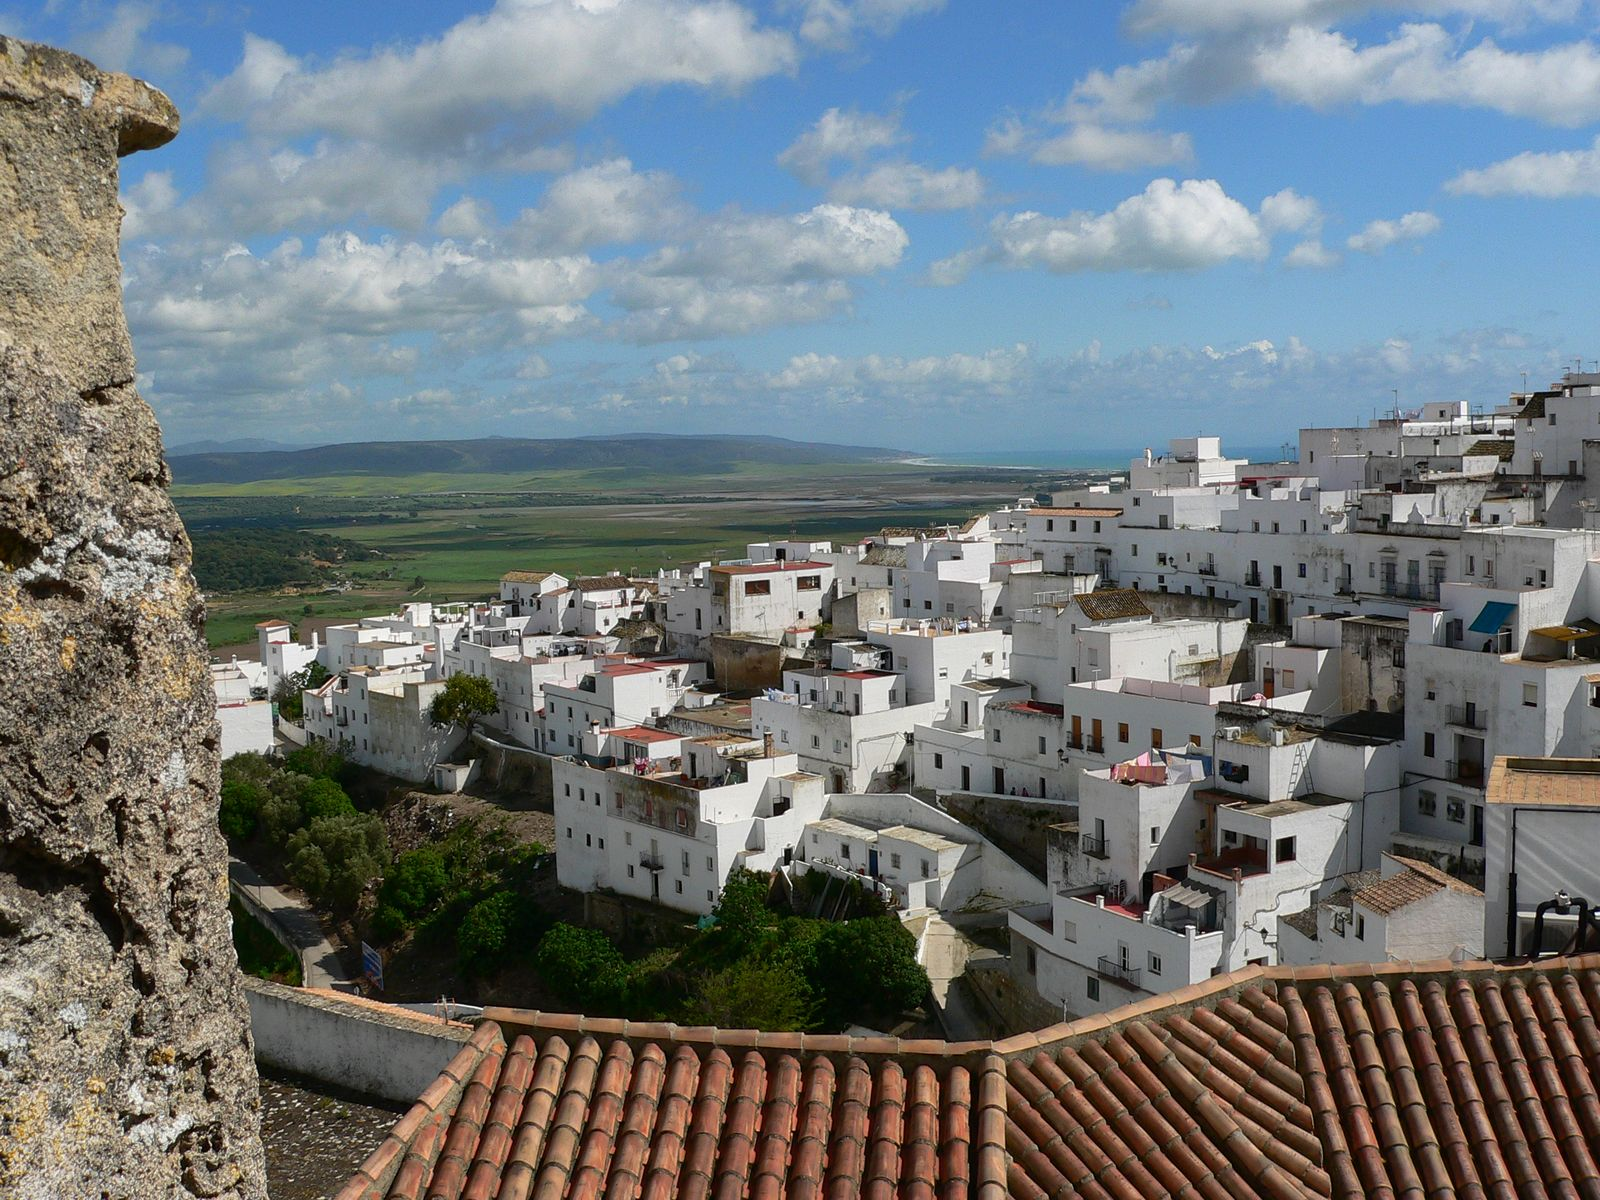 Joe's Retirement Blog: Vejer de la Frontera, Andalusia, Spain